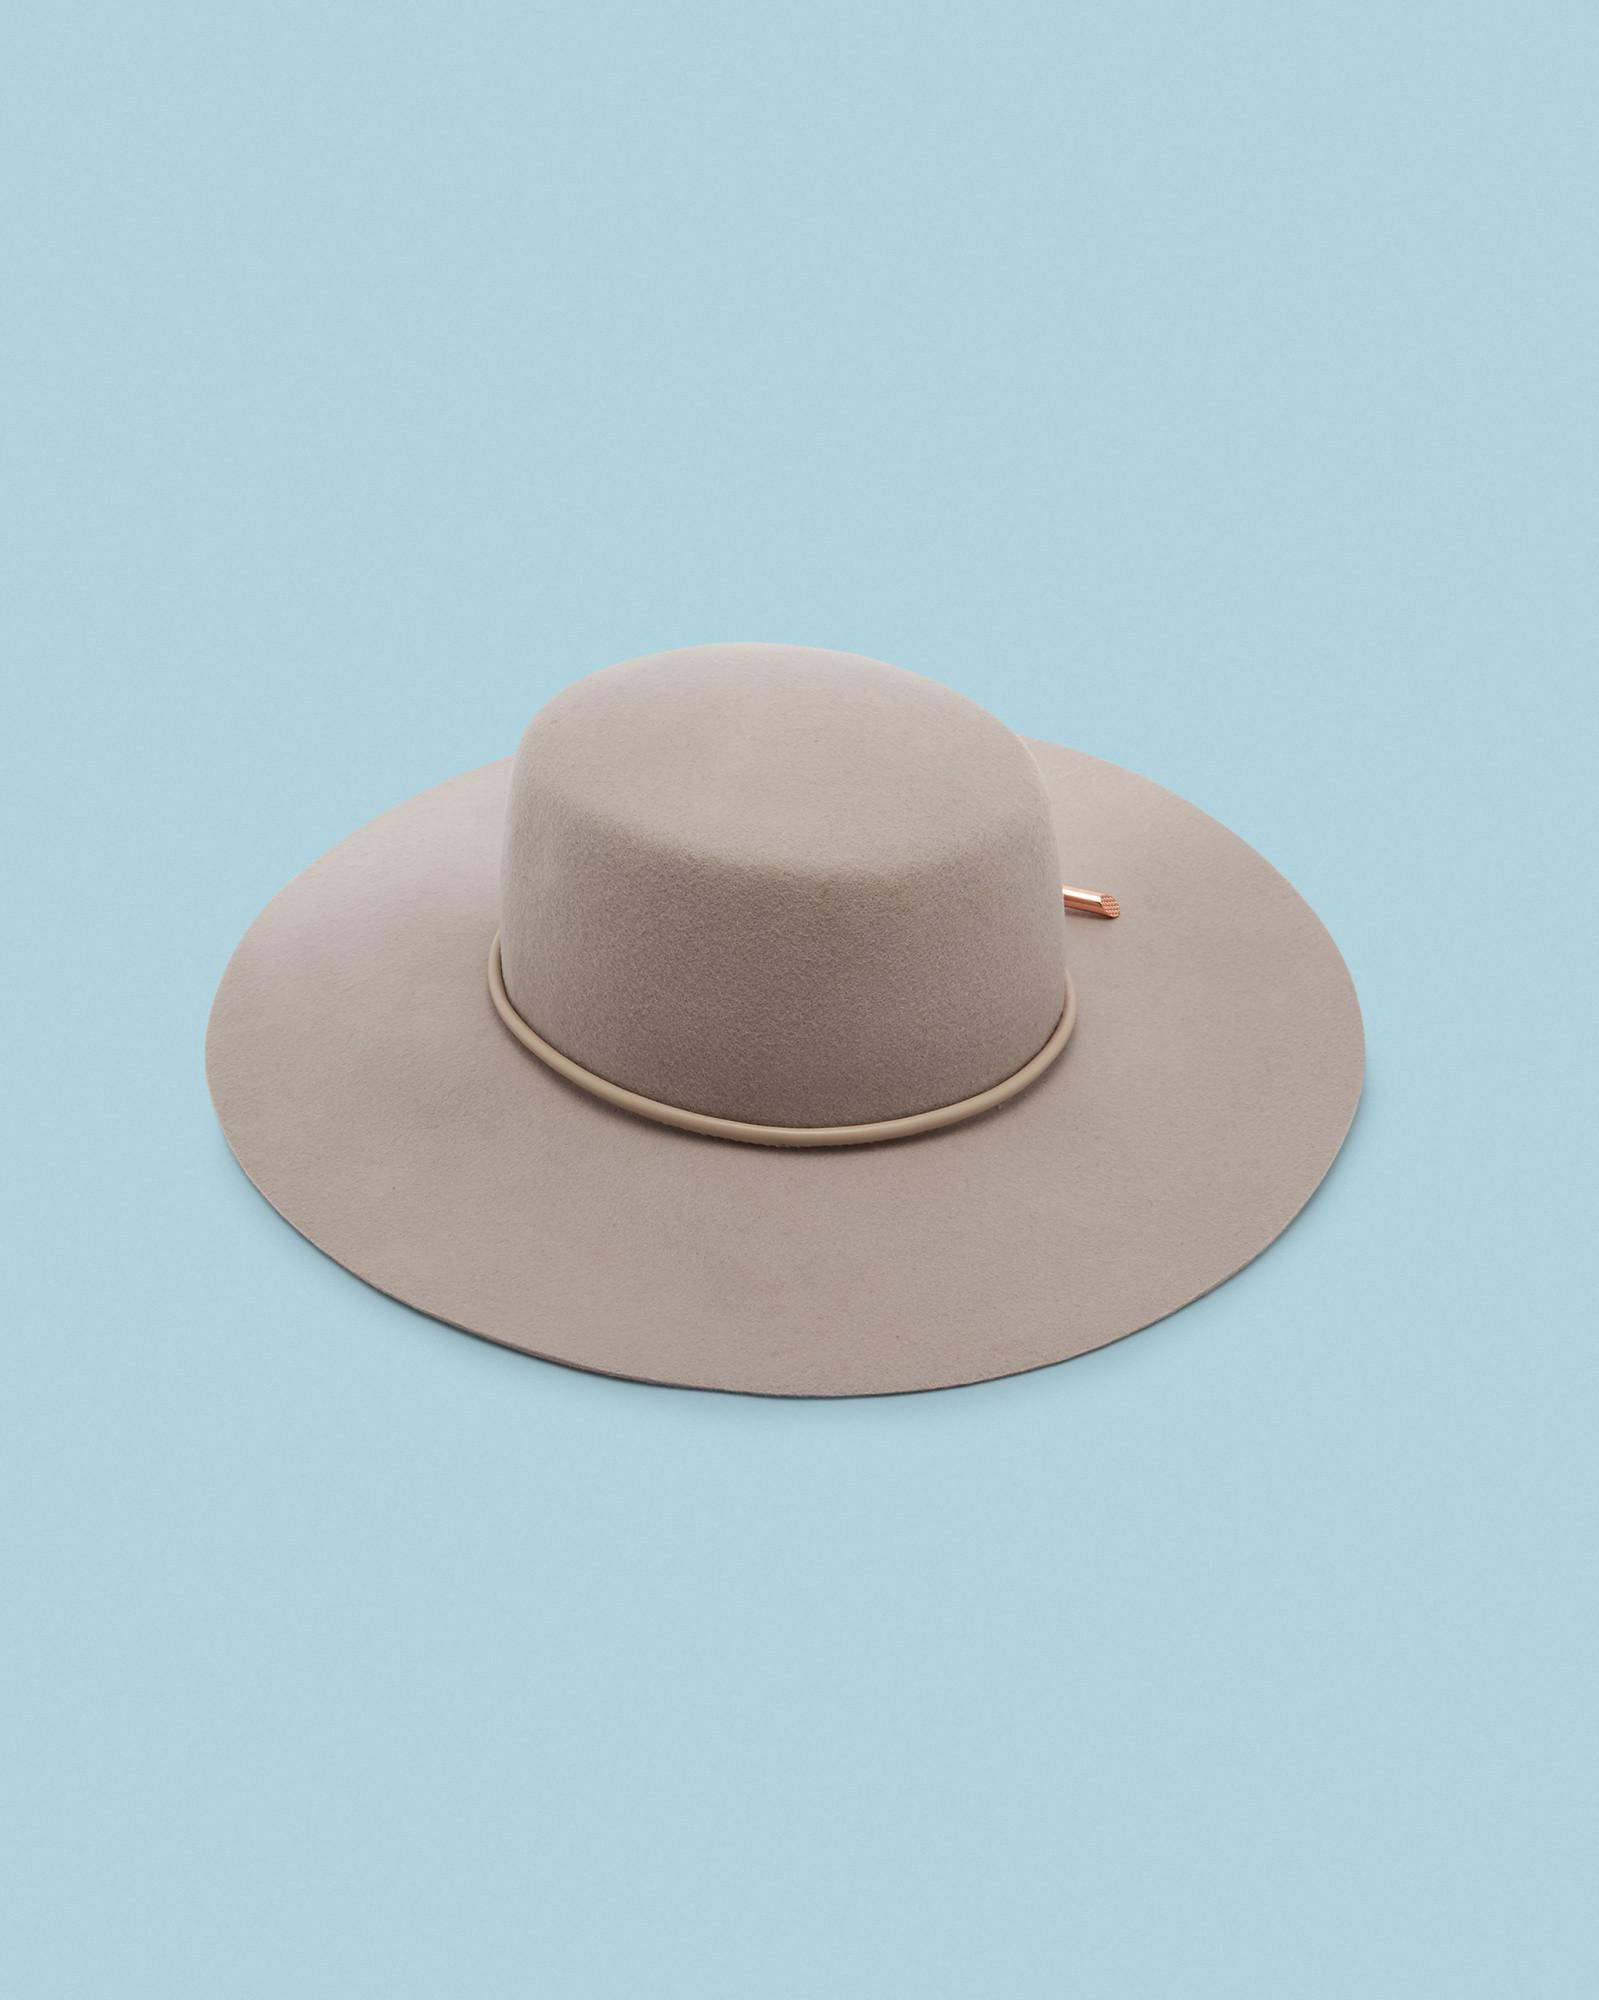 Ted Baker Rope Detail Floppy Hat in Gray - Lyst 586d8f1535d2